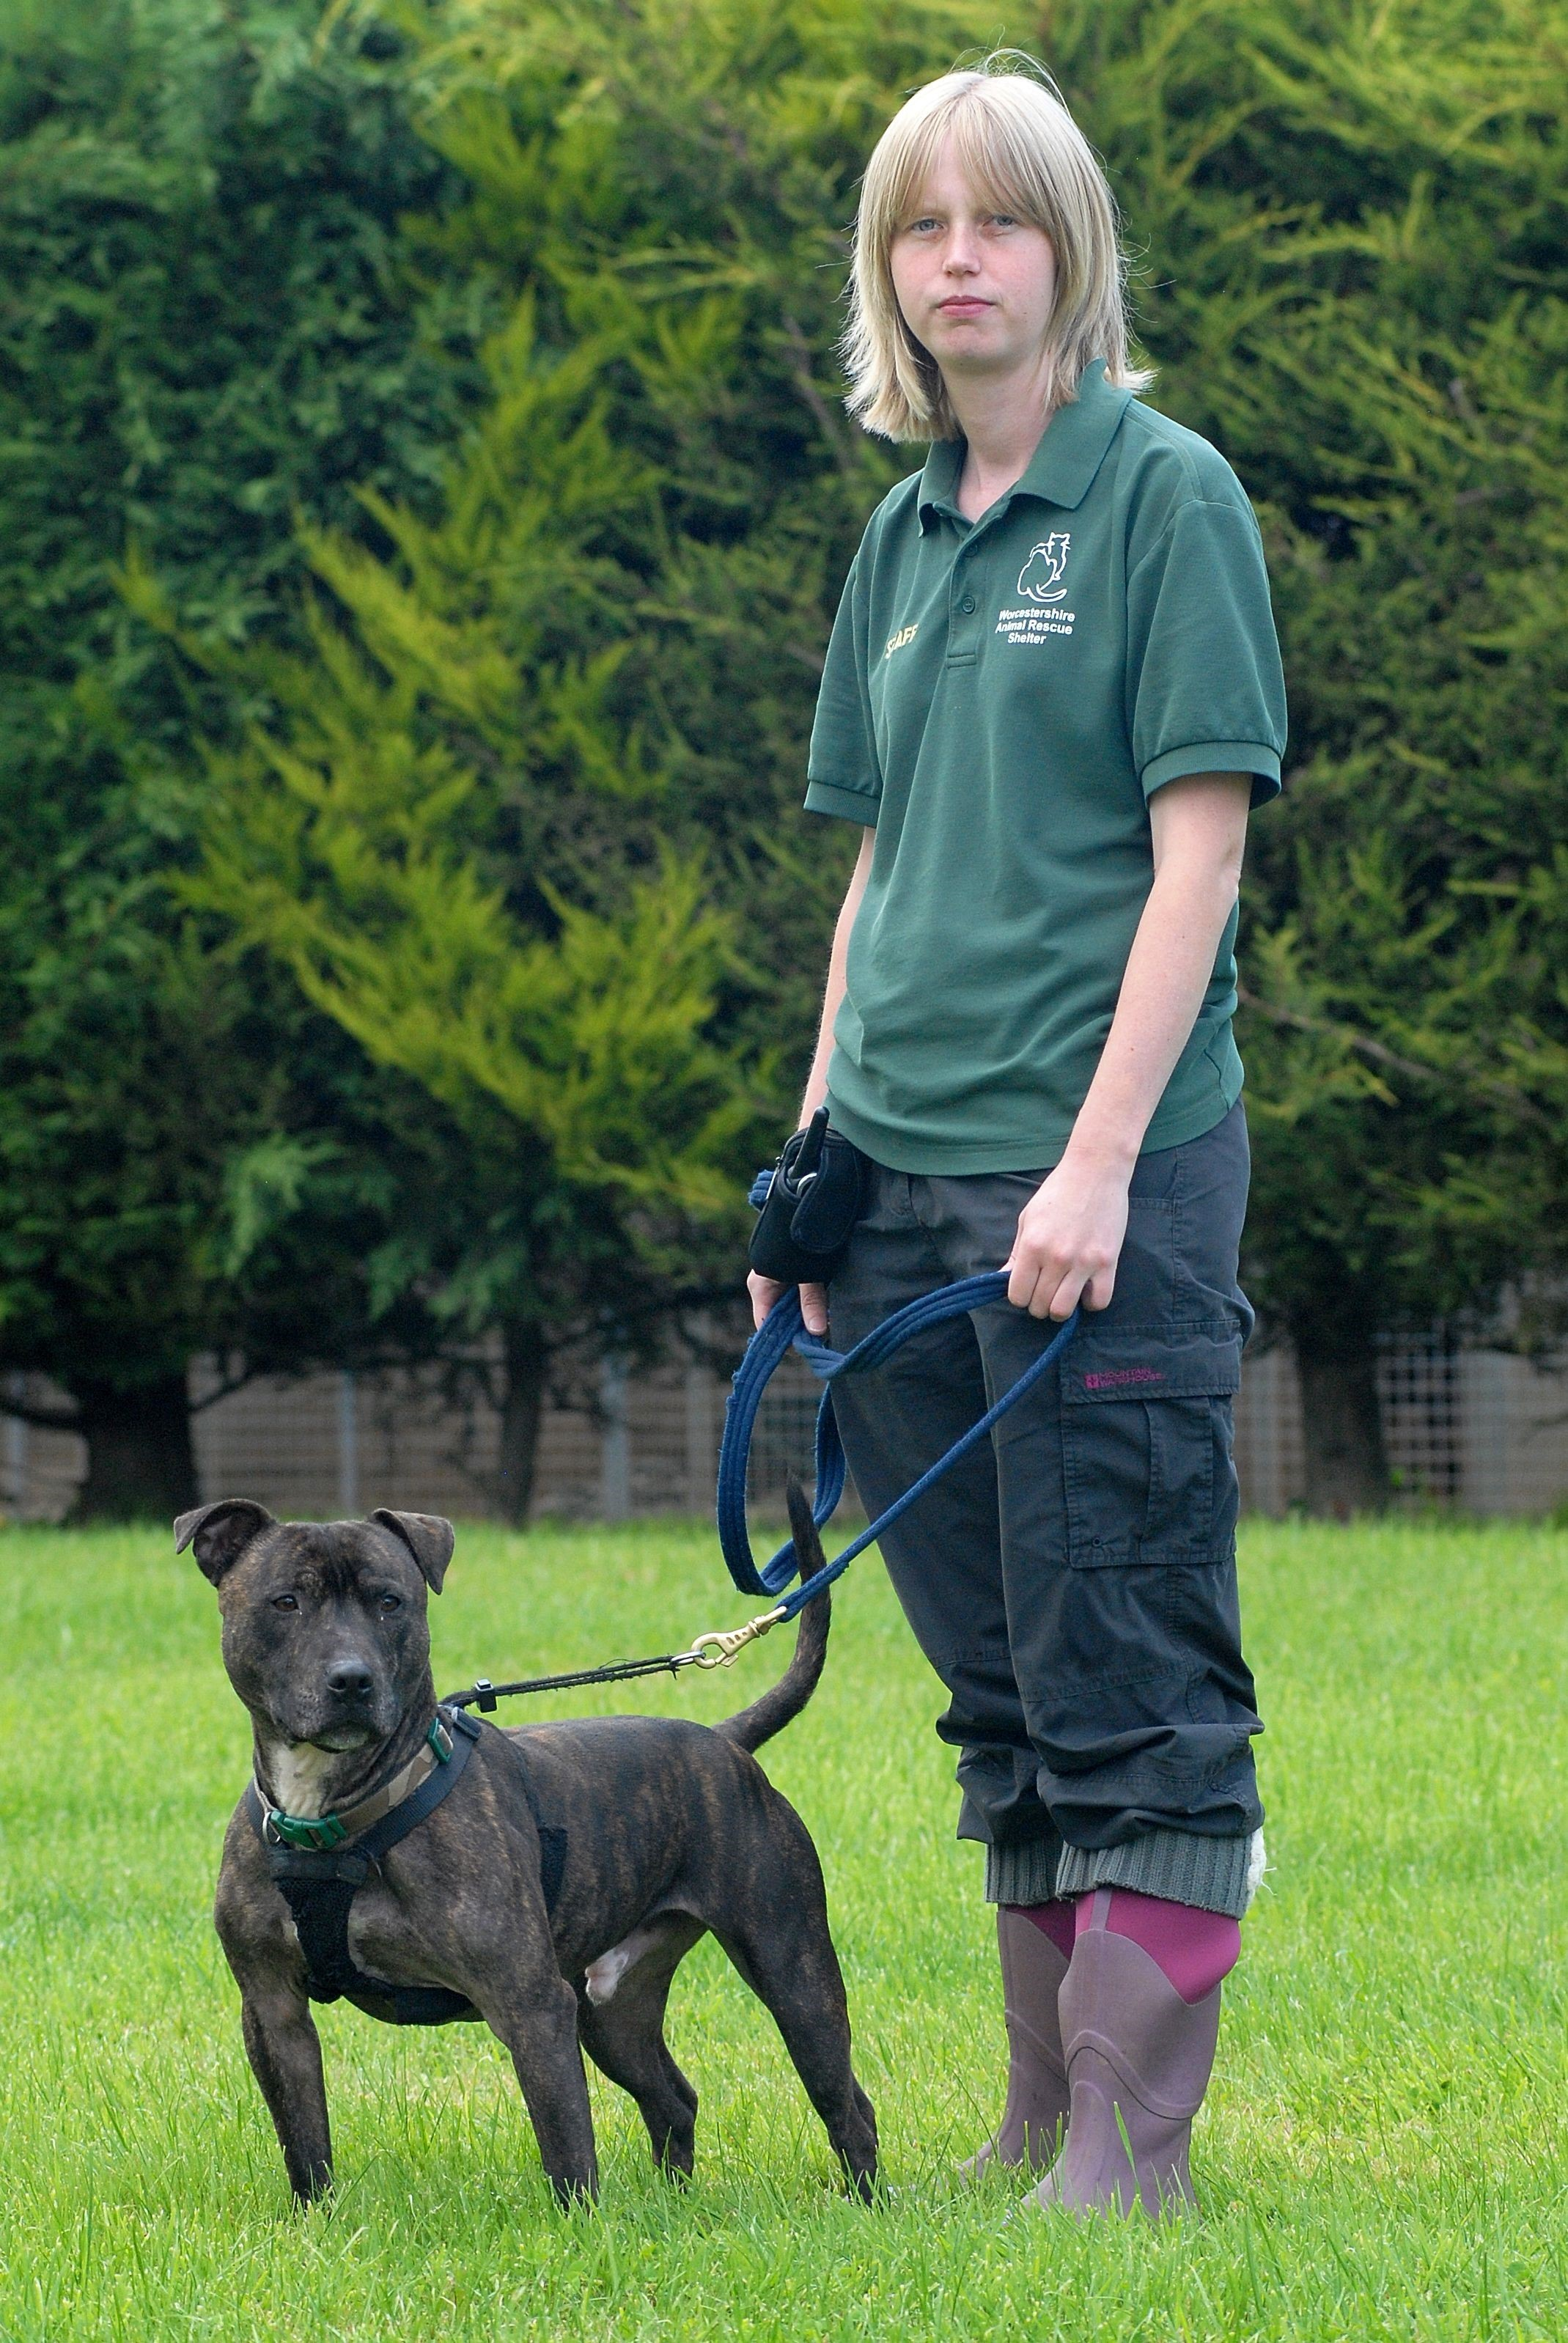 Wagging tails once again at rescue shelter which faced a drop in dog walkers